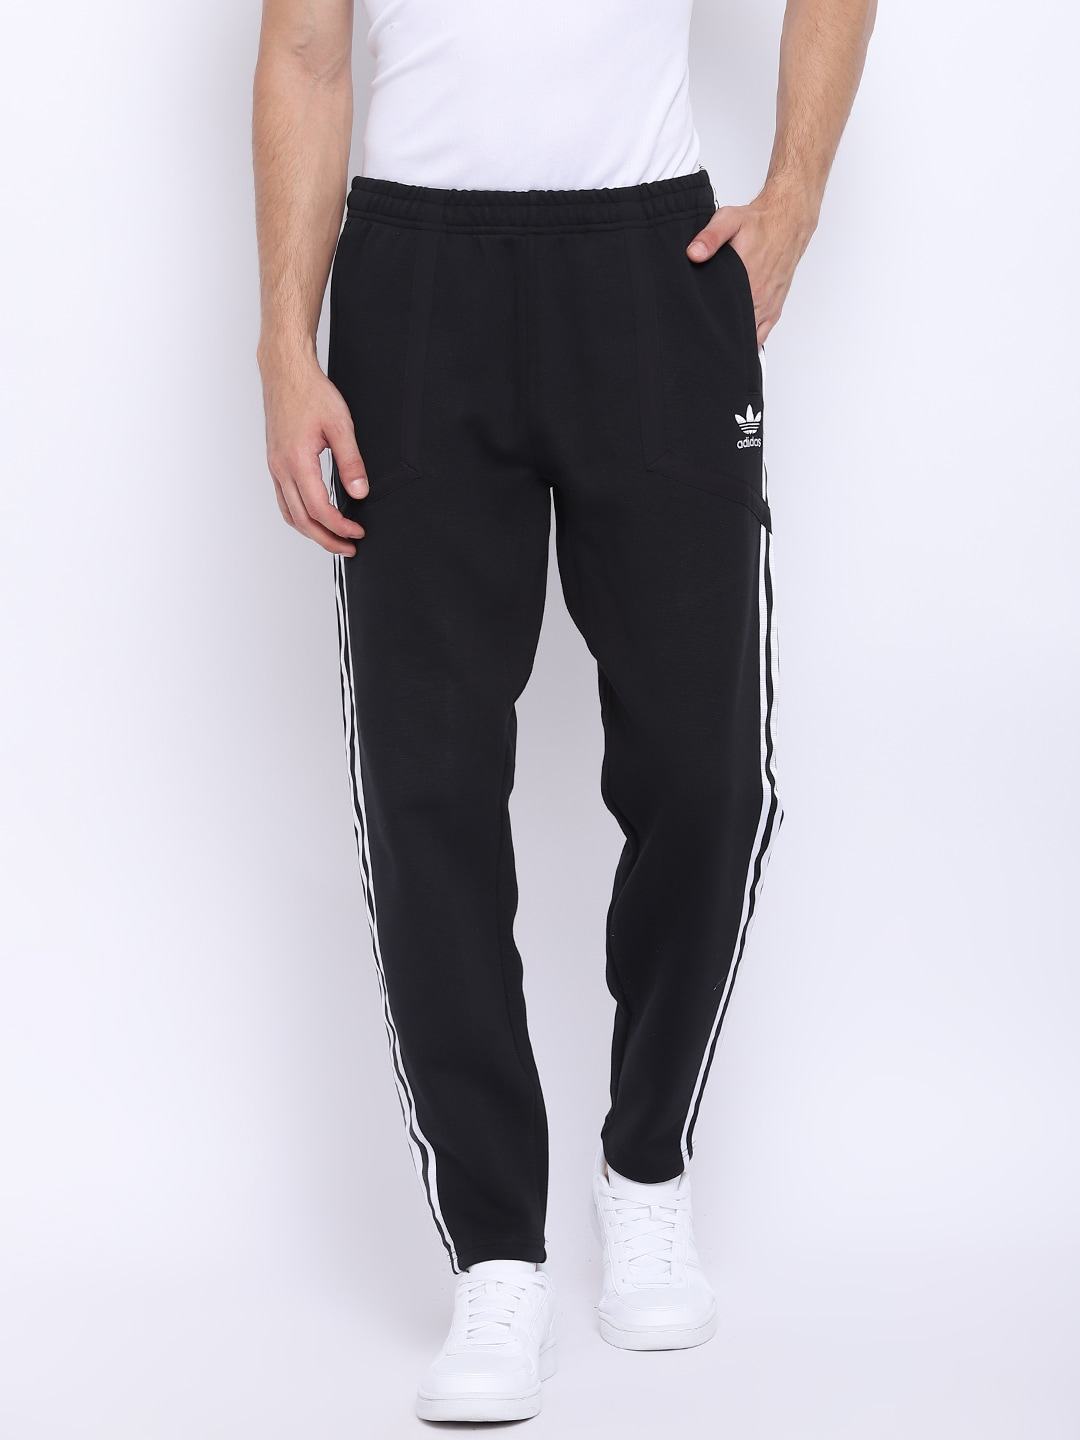 997aa739c1d4 Adidas Originals Track Pants - Buy Adidas Originals Track Pants Online